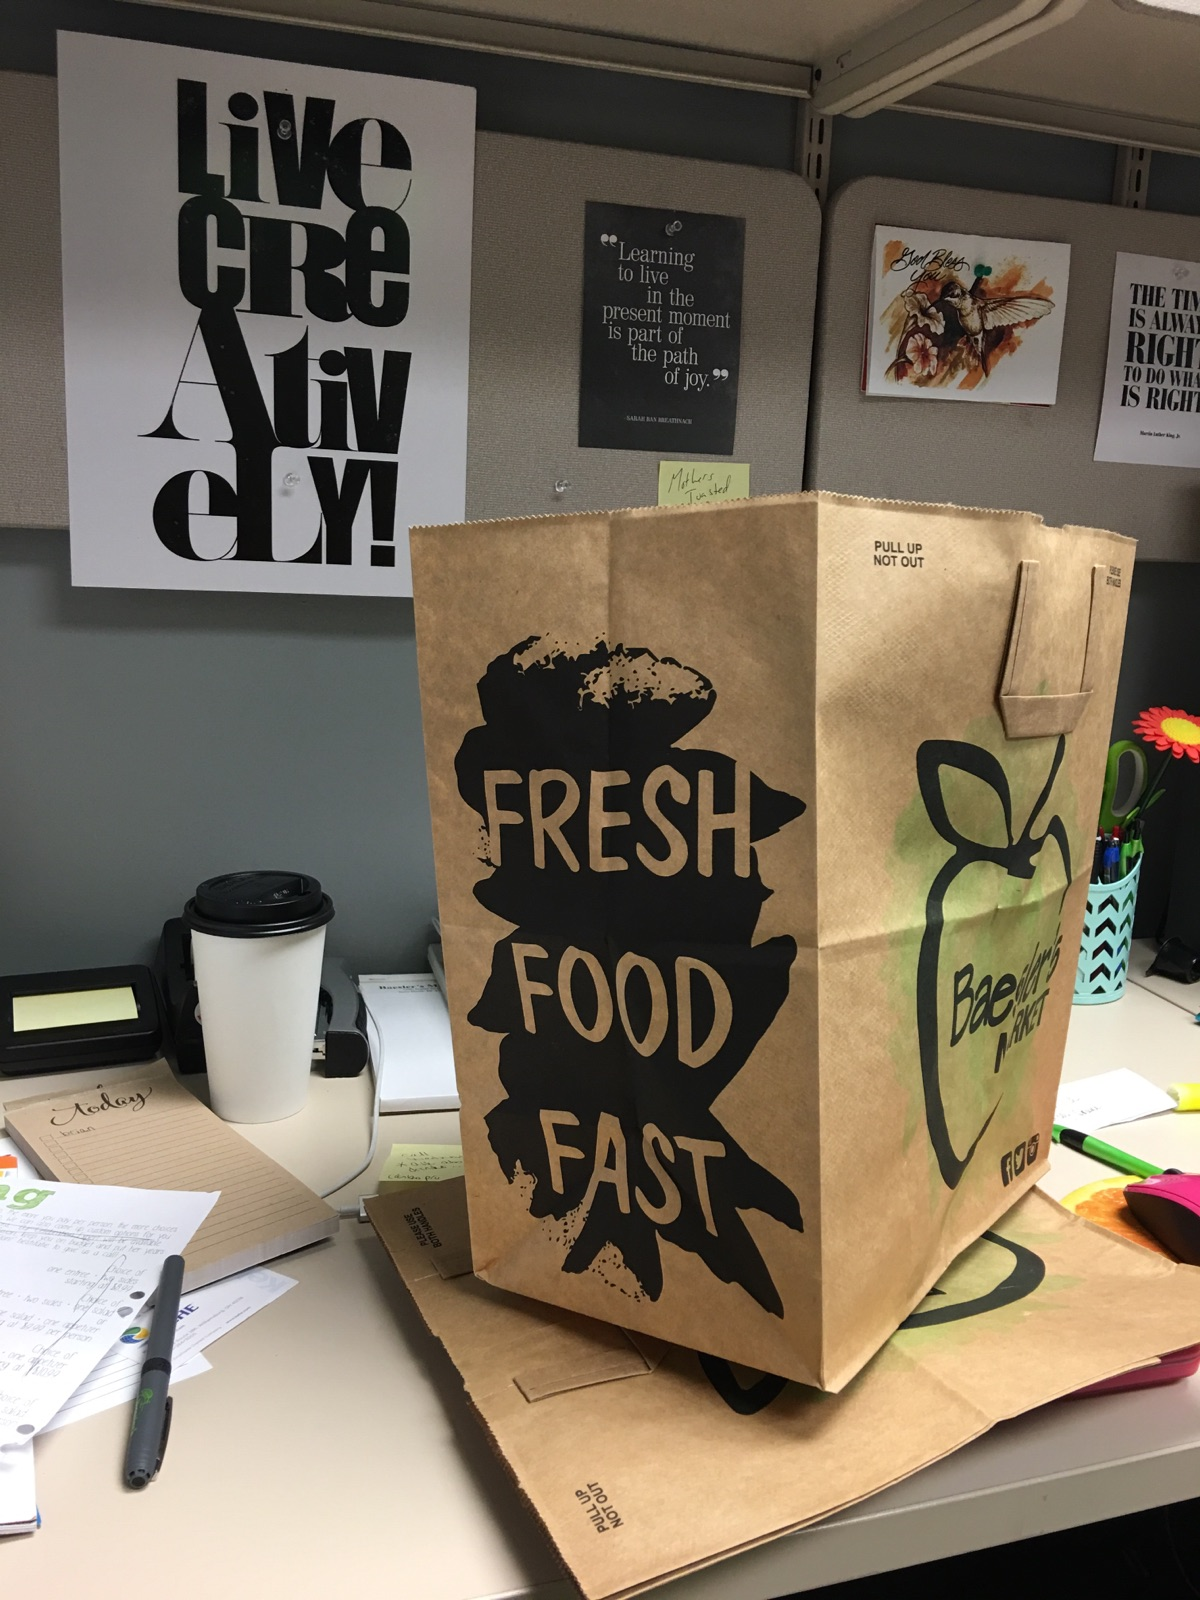 Paper Bag Side View